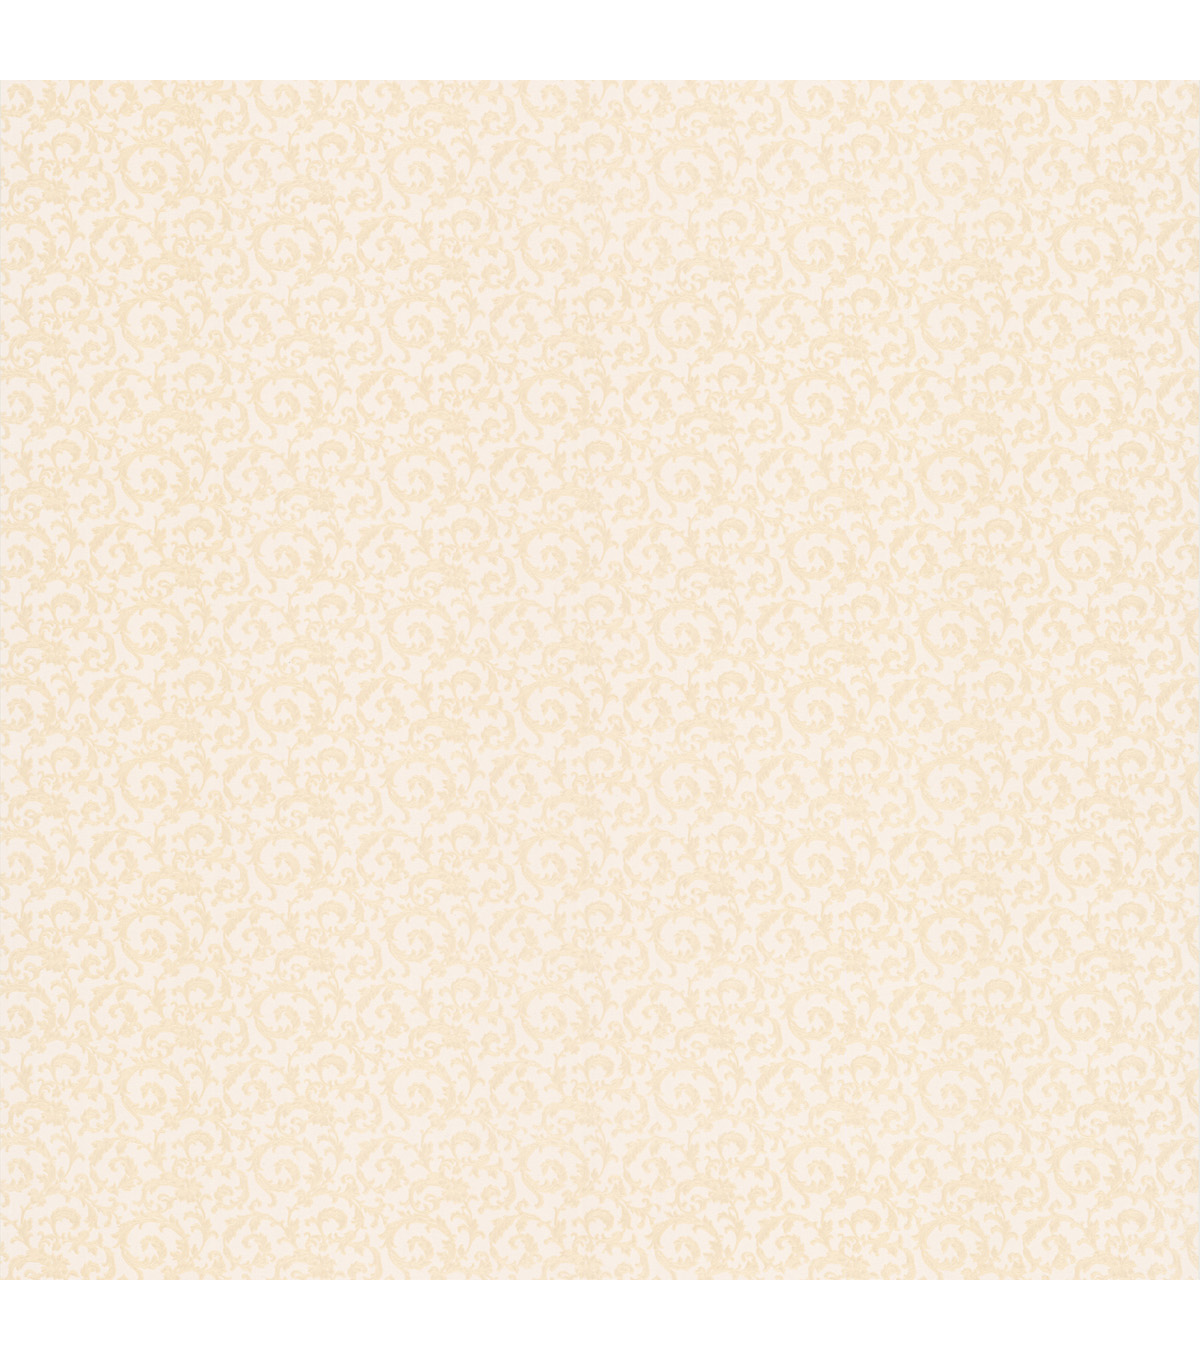 Wembley Beige Scroll Texture Wallpaper